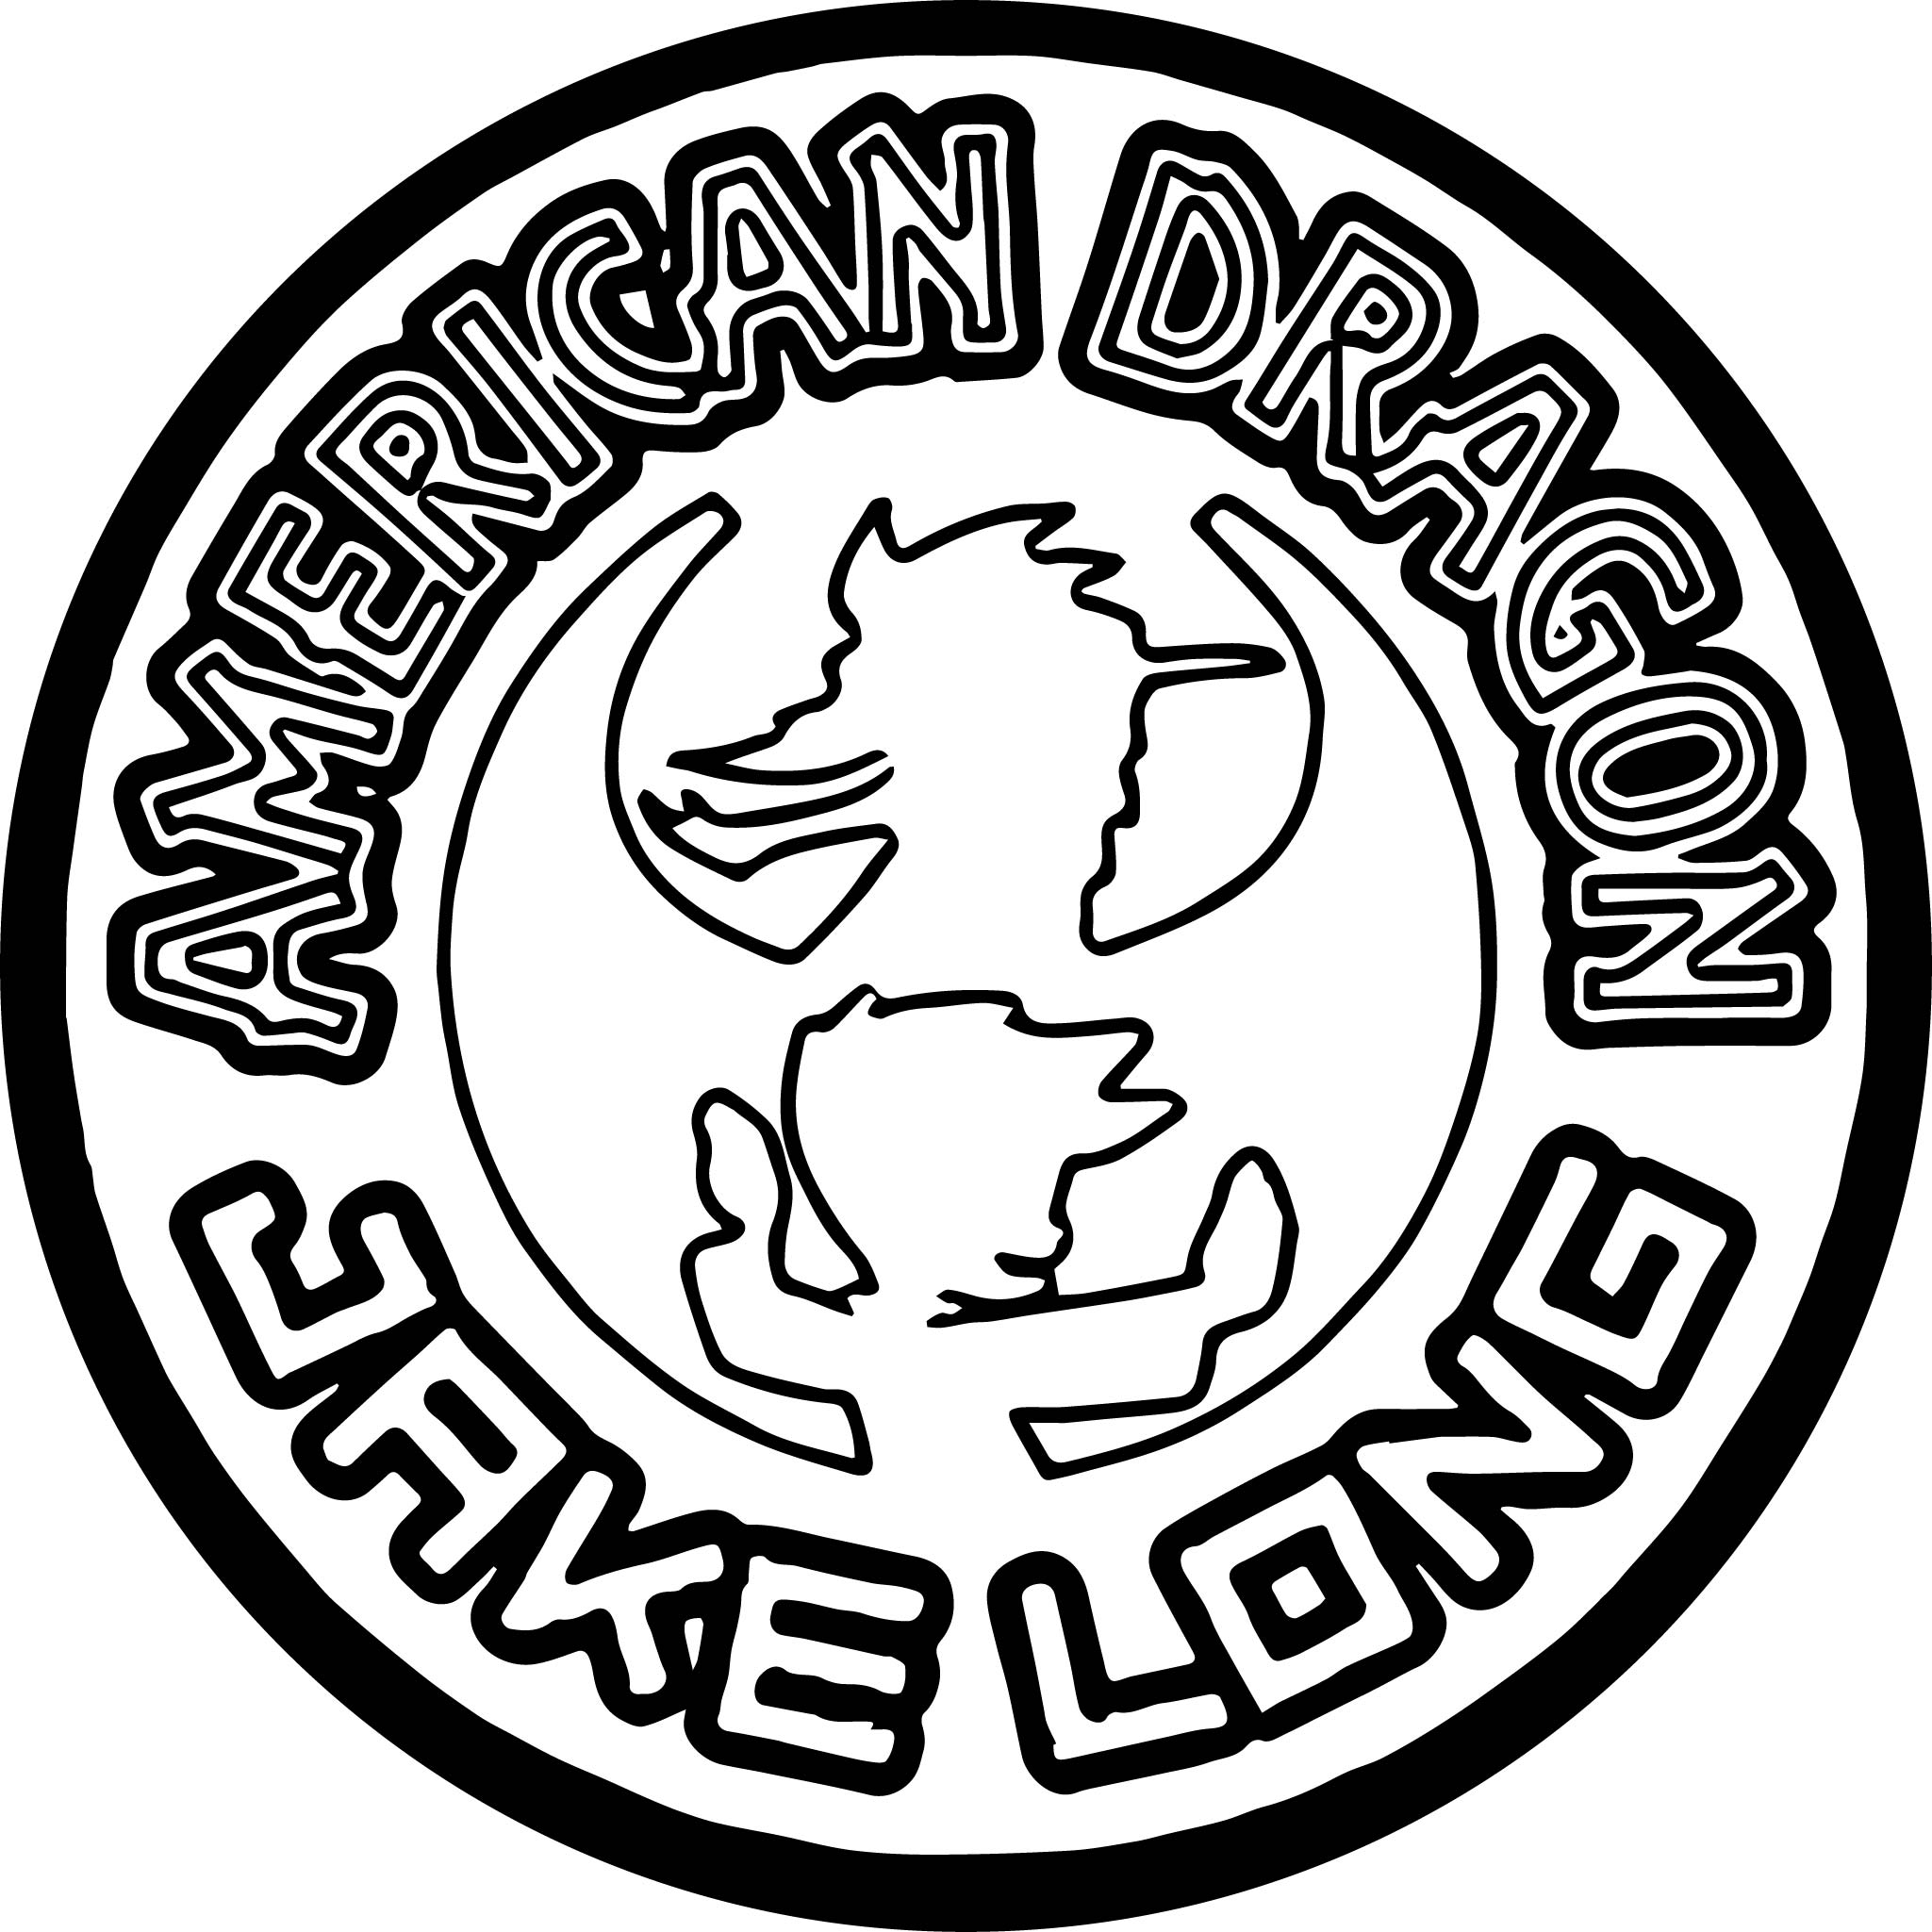 Adjl Logo Coloring Page